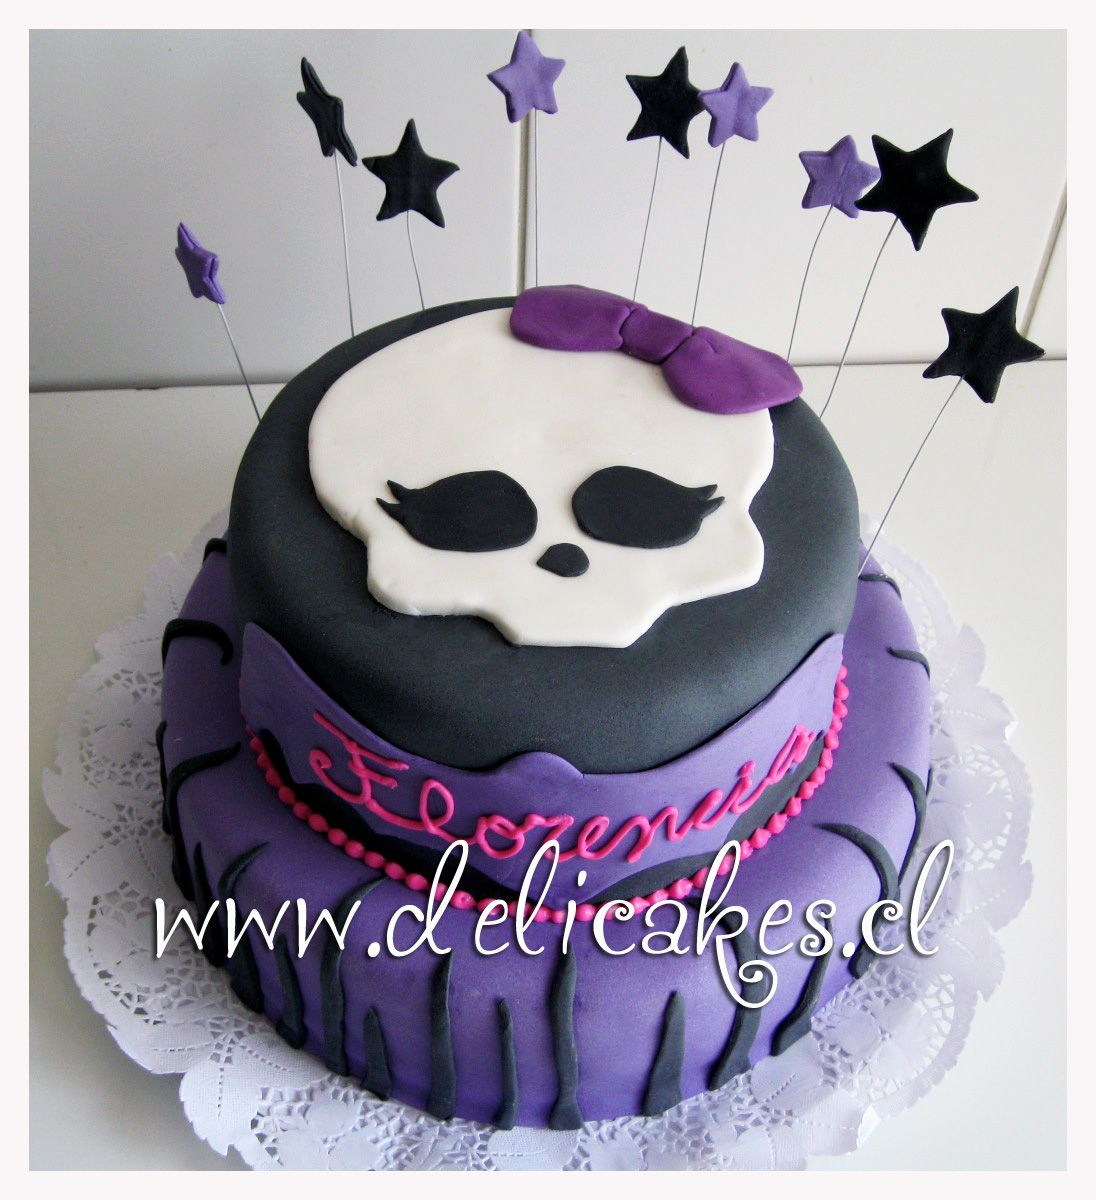 Decoracion Tortas Bizcochos Pasteles Monster High AjilbabCom ...